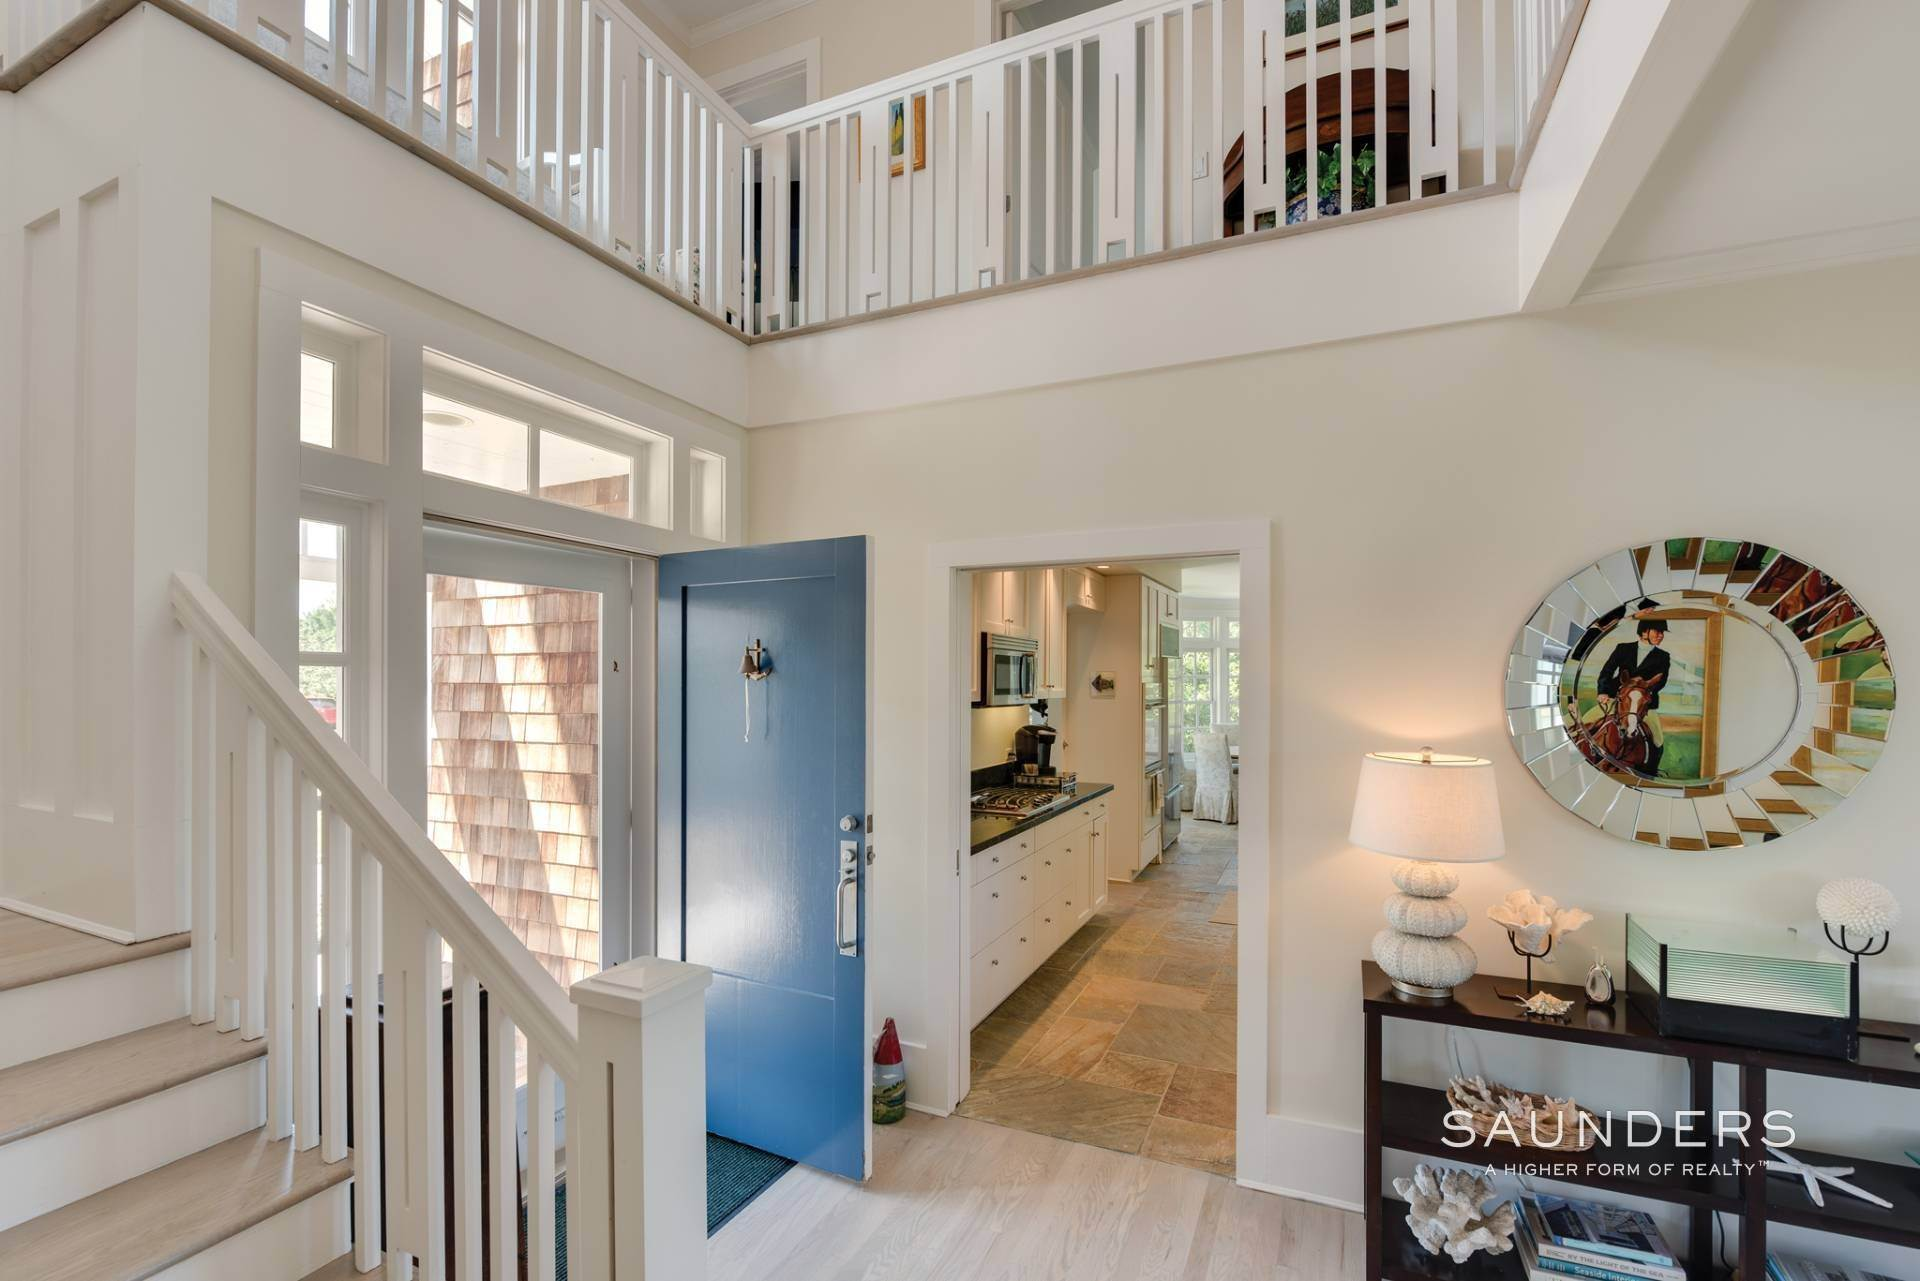 3. Single Family Homes for Sale at Bridgehampton South Waterfront With Dock & Ocean View 87 Rose Way, Bridgehampton, Southampton Town, NY 11932